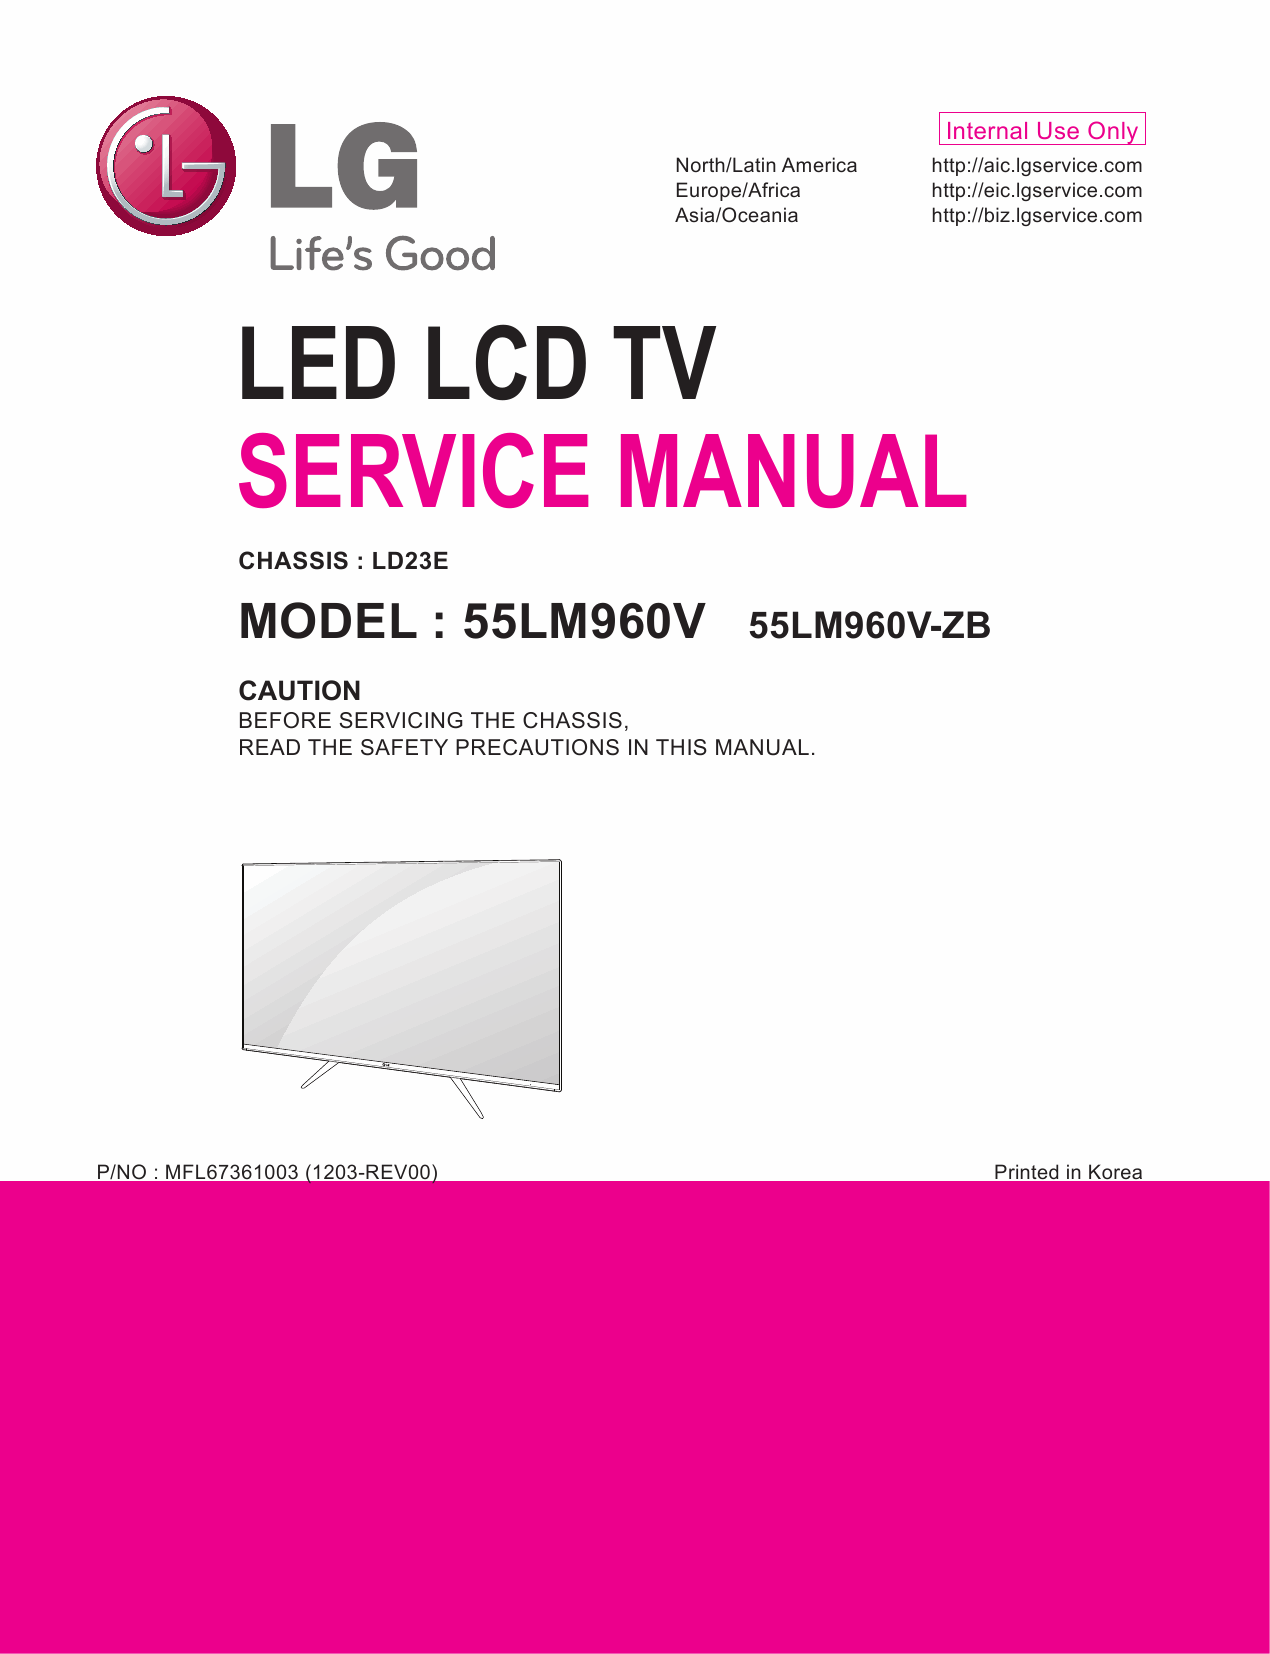 LG_LCD_TV_55LM960V_Service_Manual_2012_Qmanual.com-1